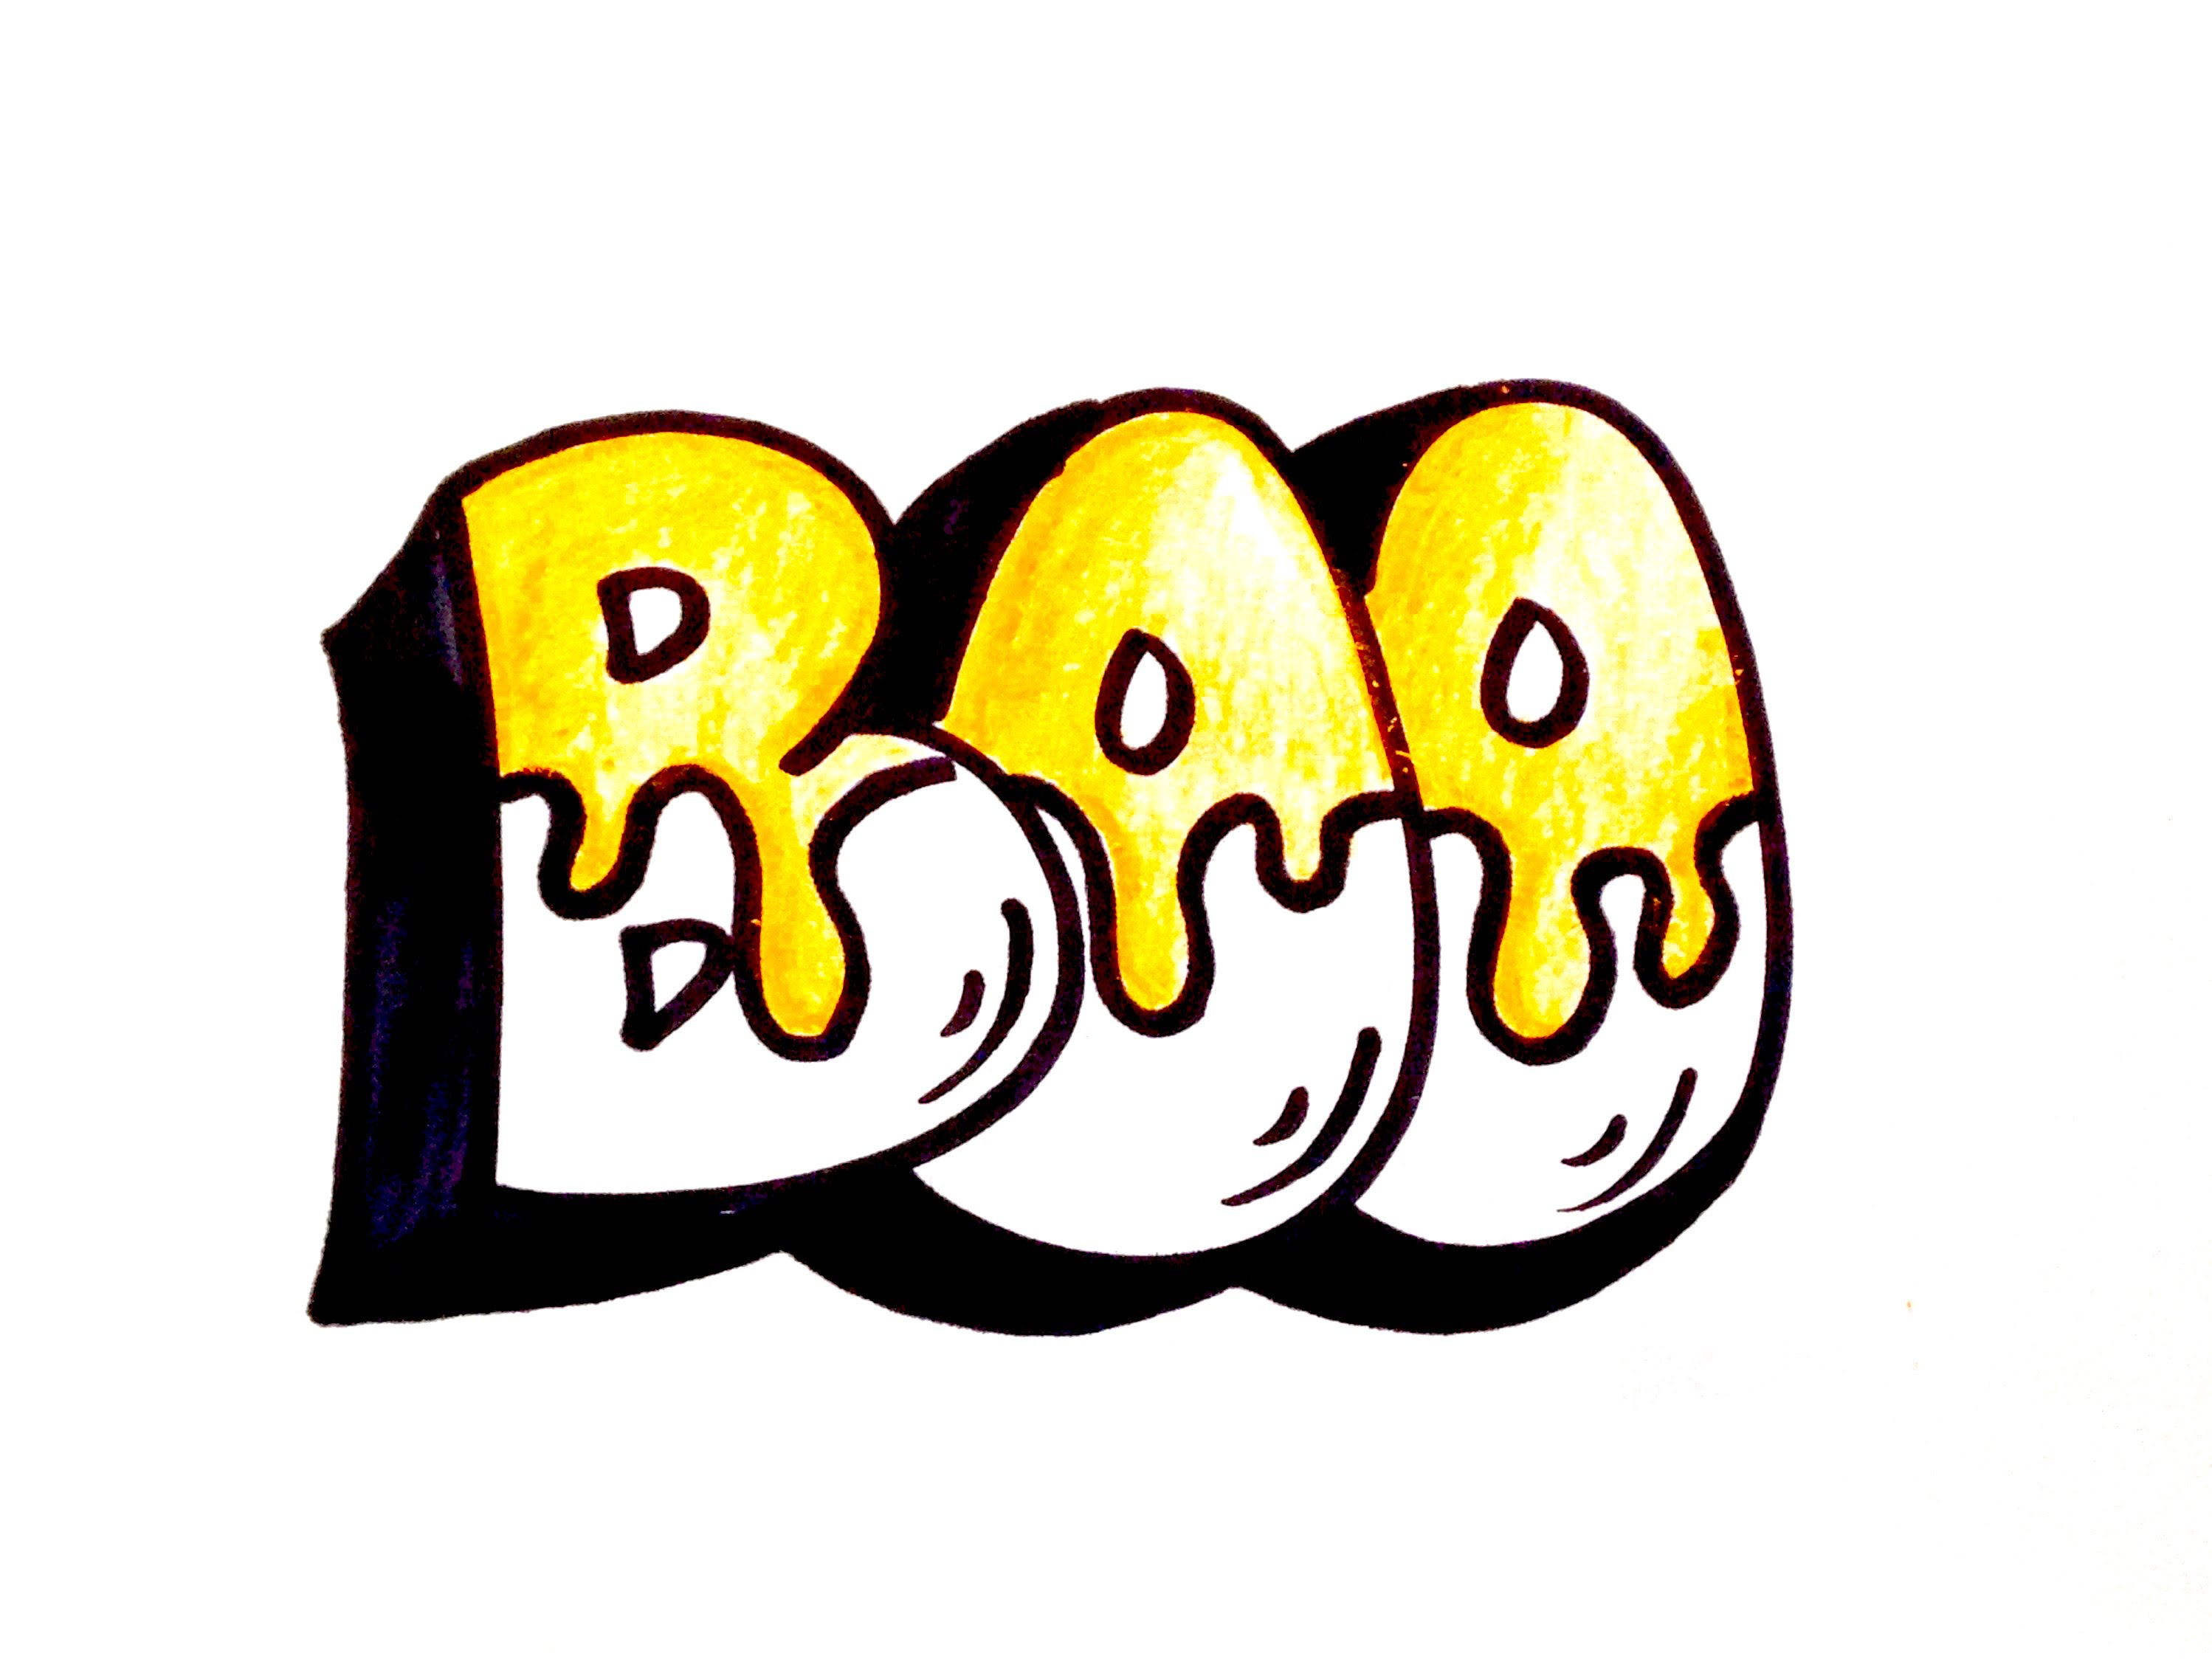 2997x2248 Drawing Lesson How To Draw Boo Block Letters For Halloween